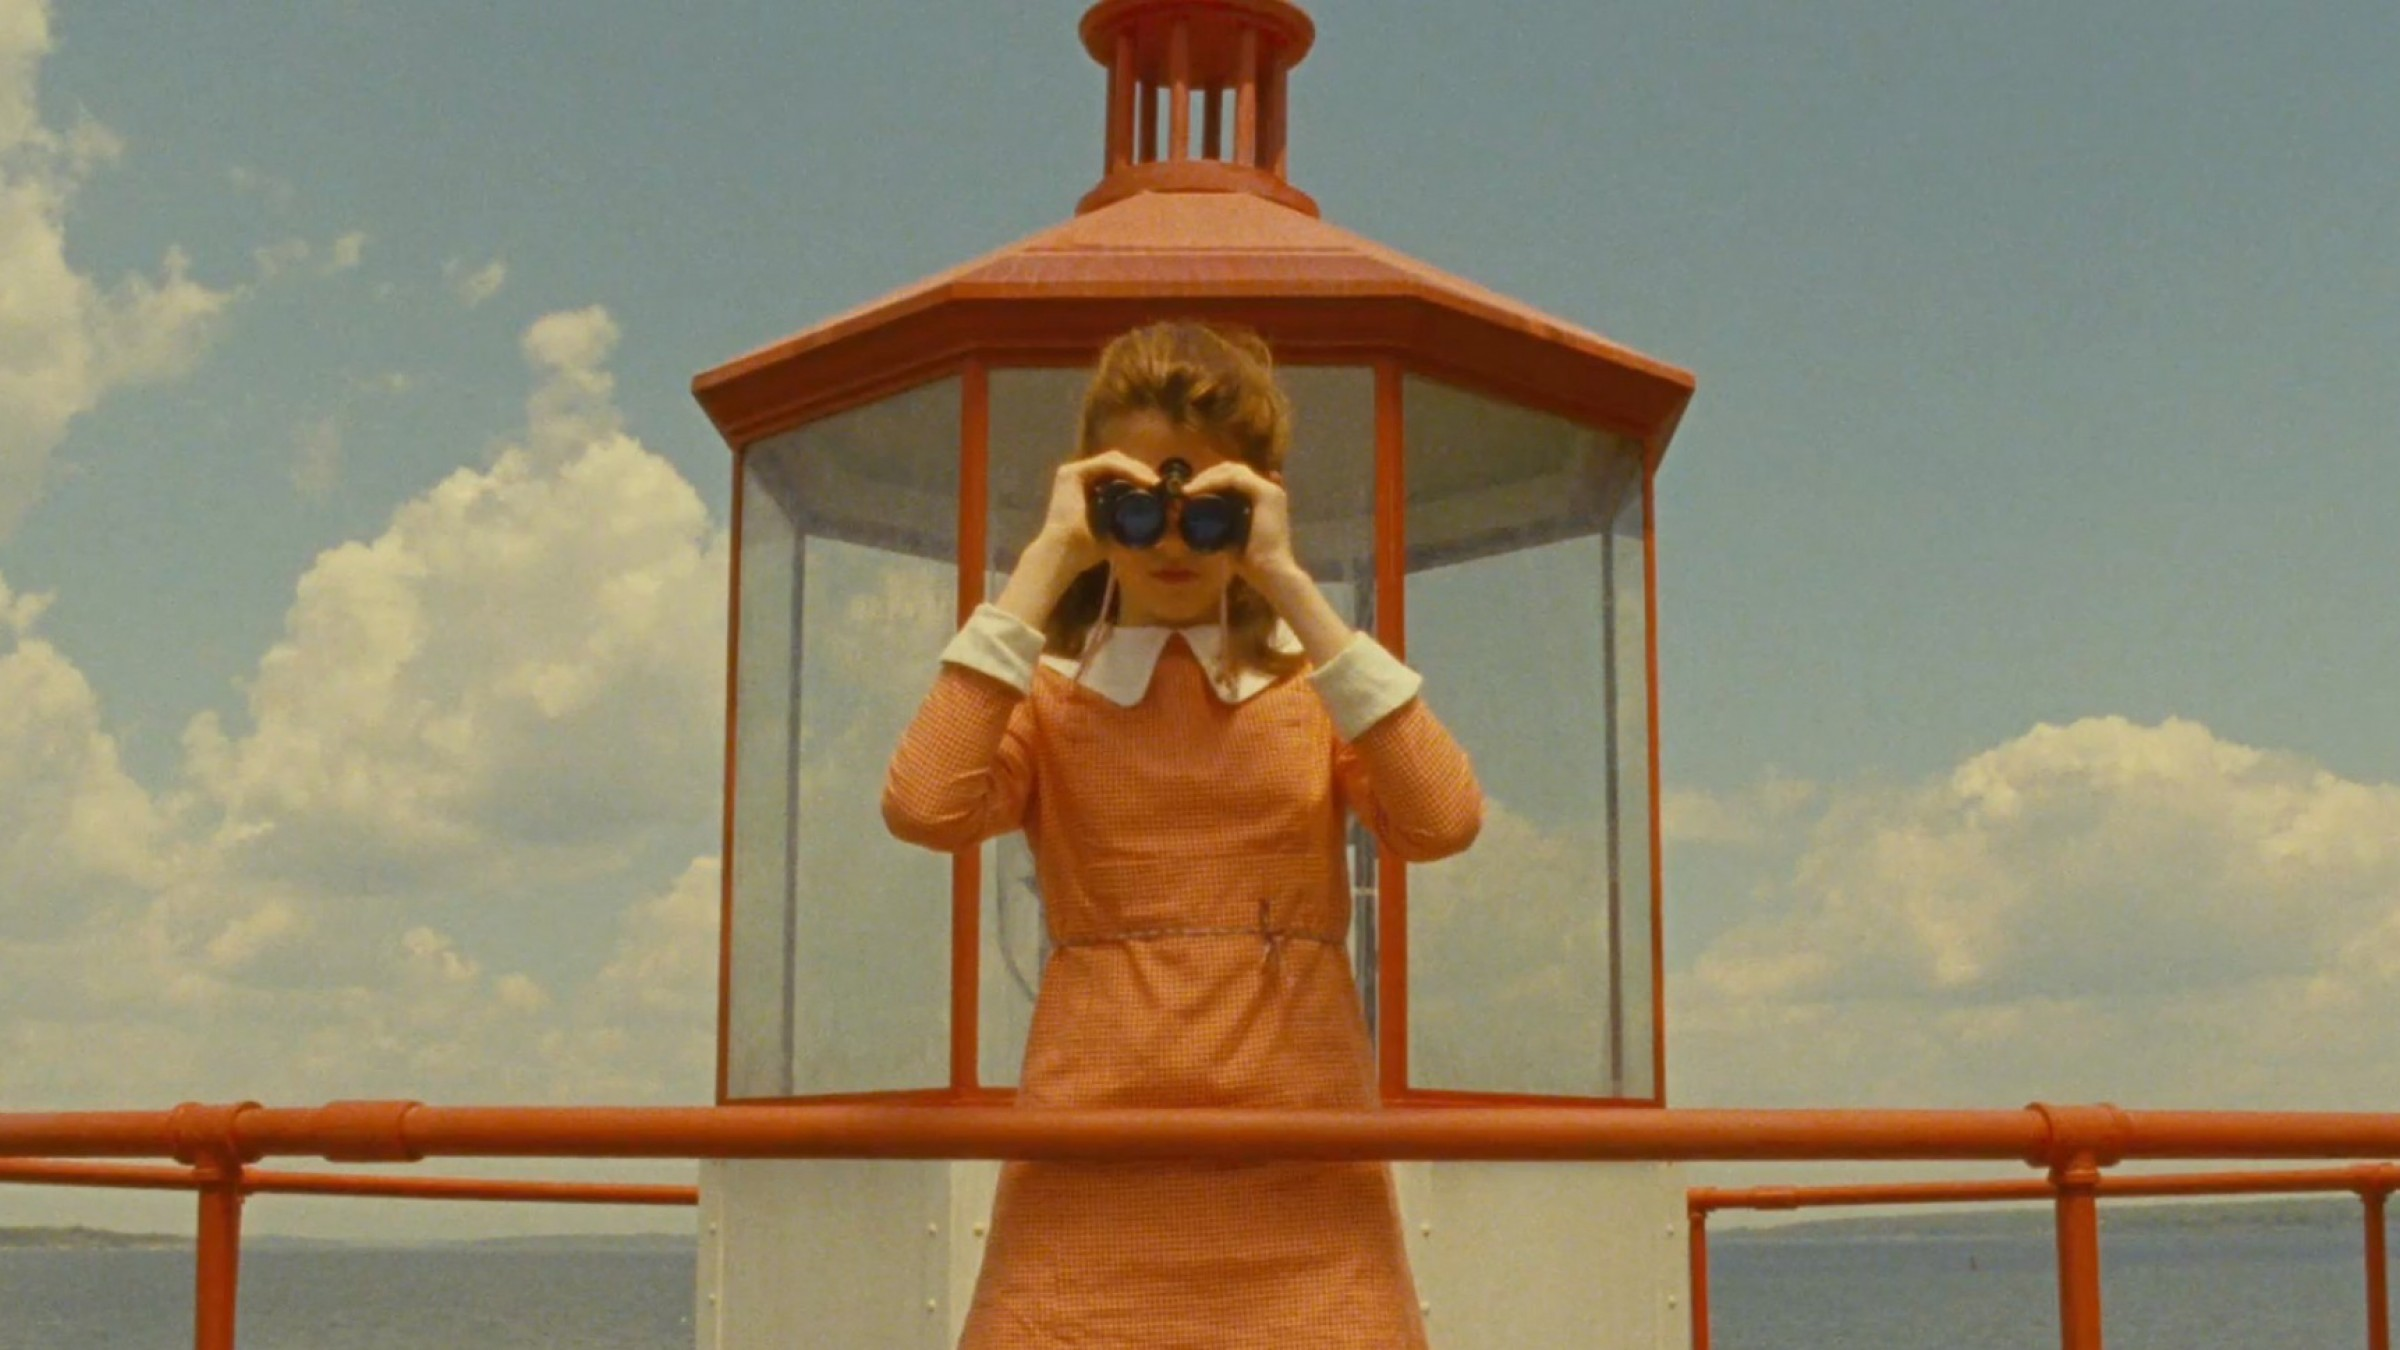 amelie cinematography essay Delicatessen by amelie director to-watch essay topics for life of pi quotes life of pi thesis statements and cinematography that makes you forget about space.